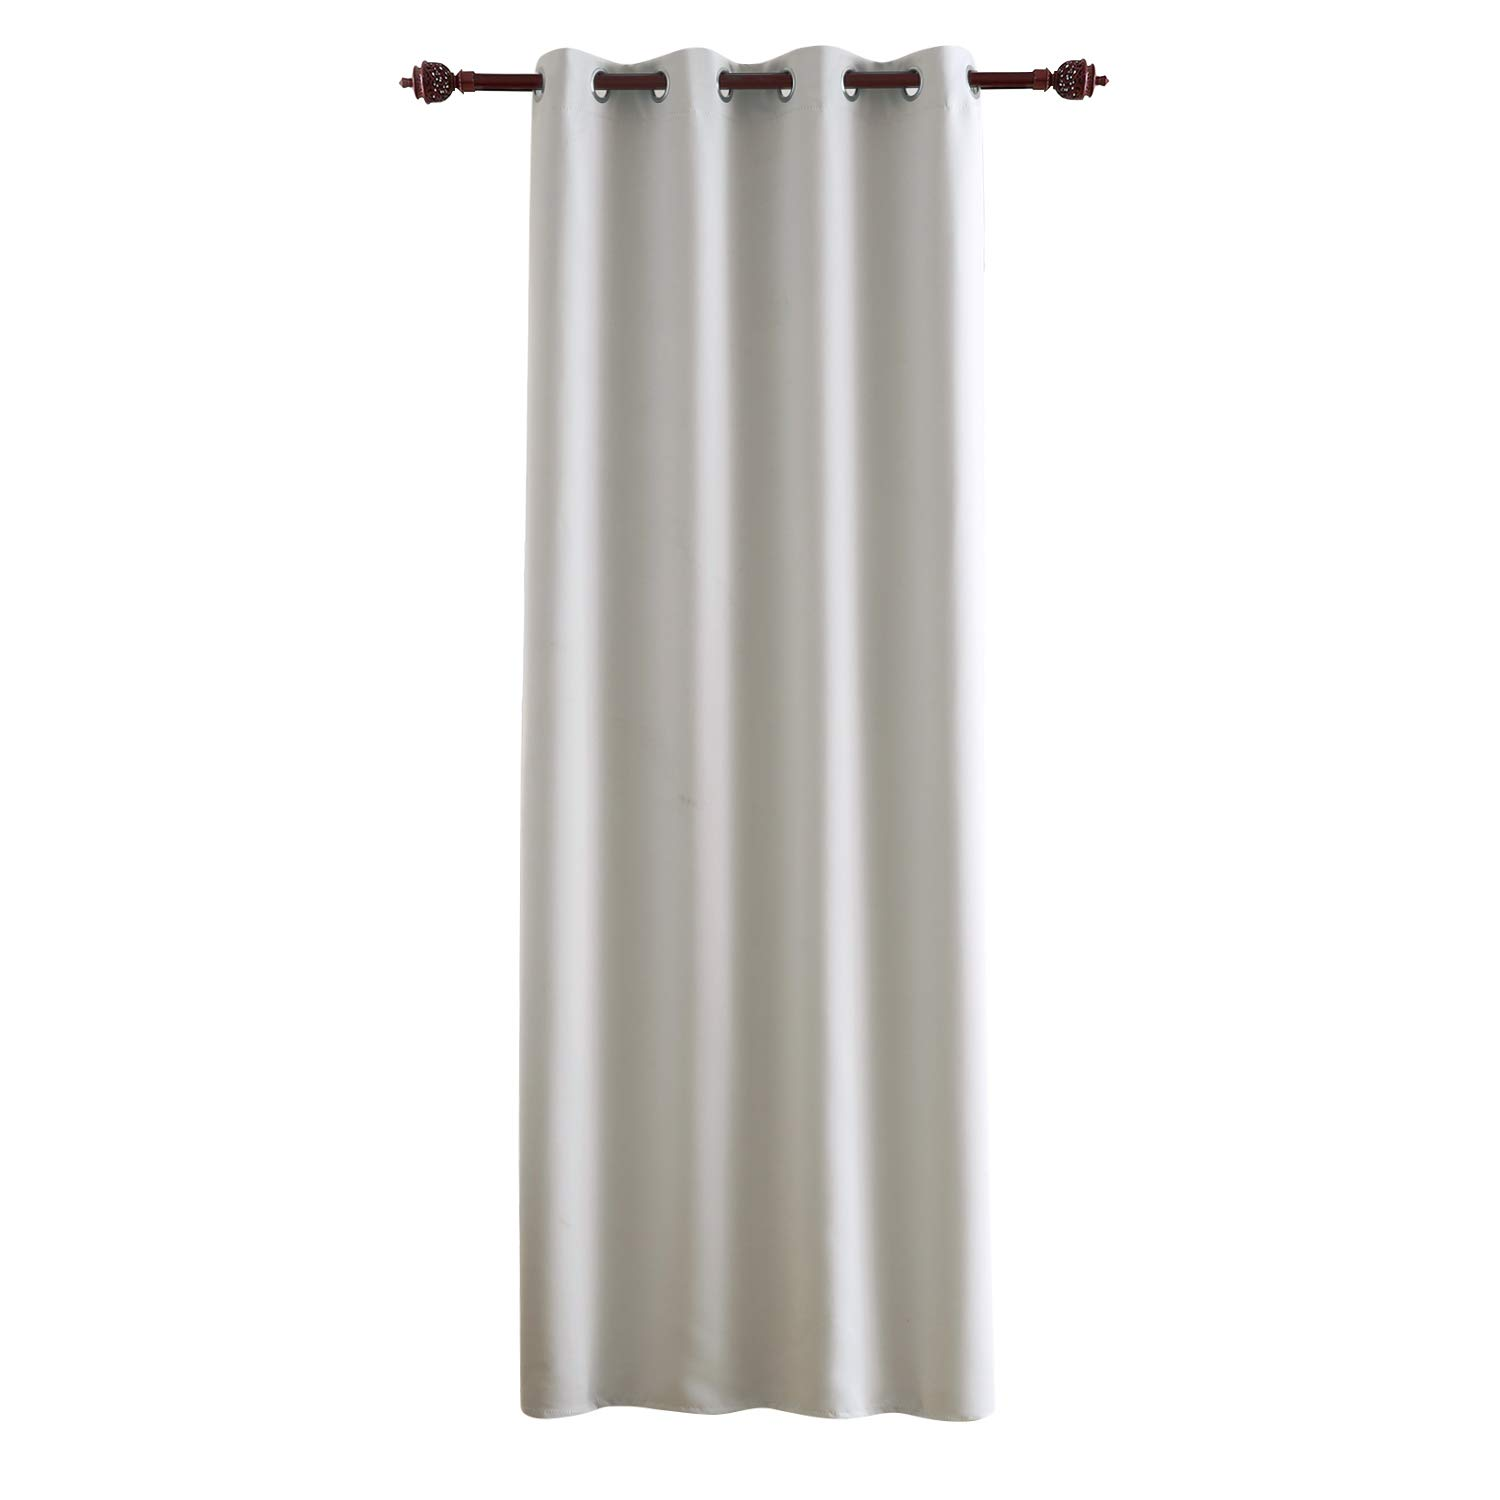 Deconovo Eyelet Window Curtain Thermal Curtain Solid Blackout Curtain for Bedroom 140x180 cm Beige One Panel